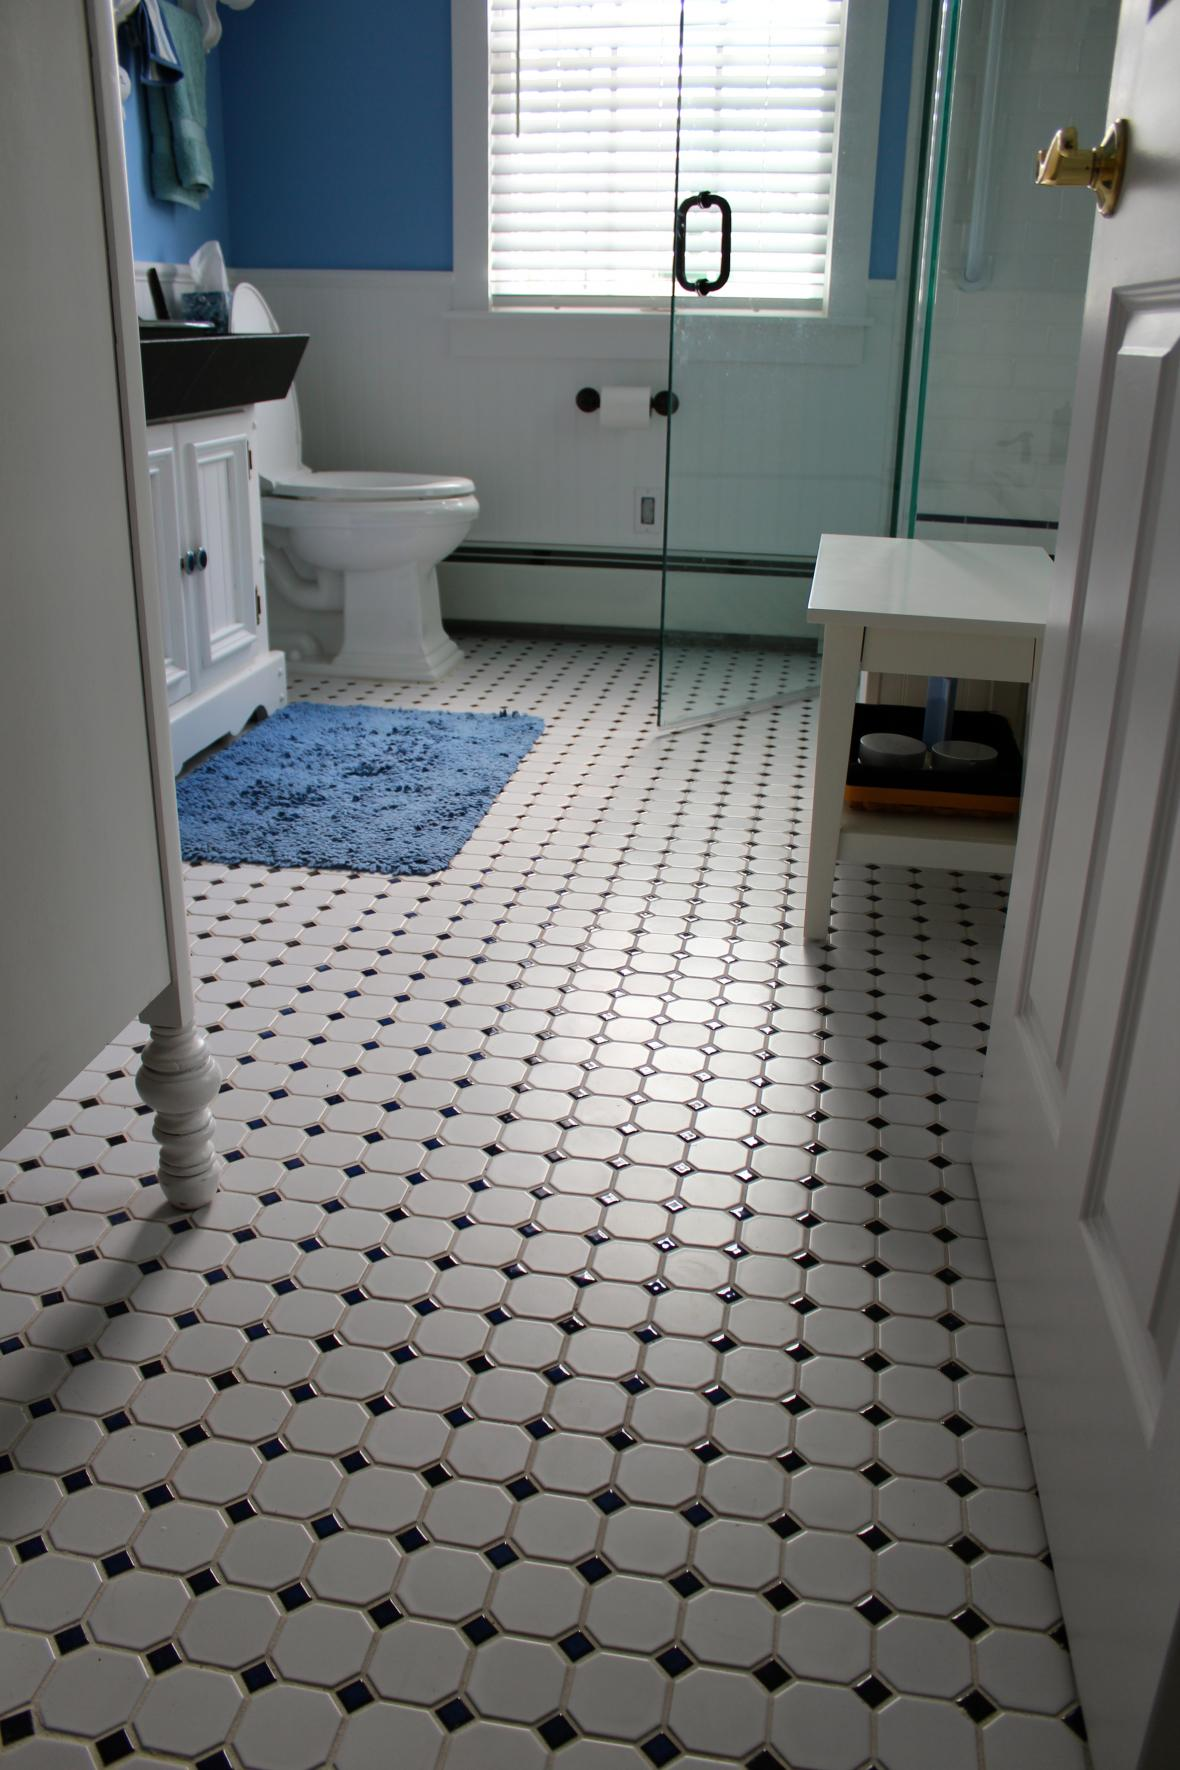 Bathroom Floor Ceramic Tile Patterns 2017 2018 Best